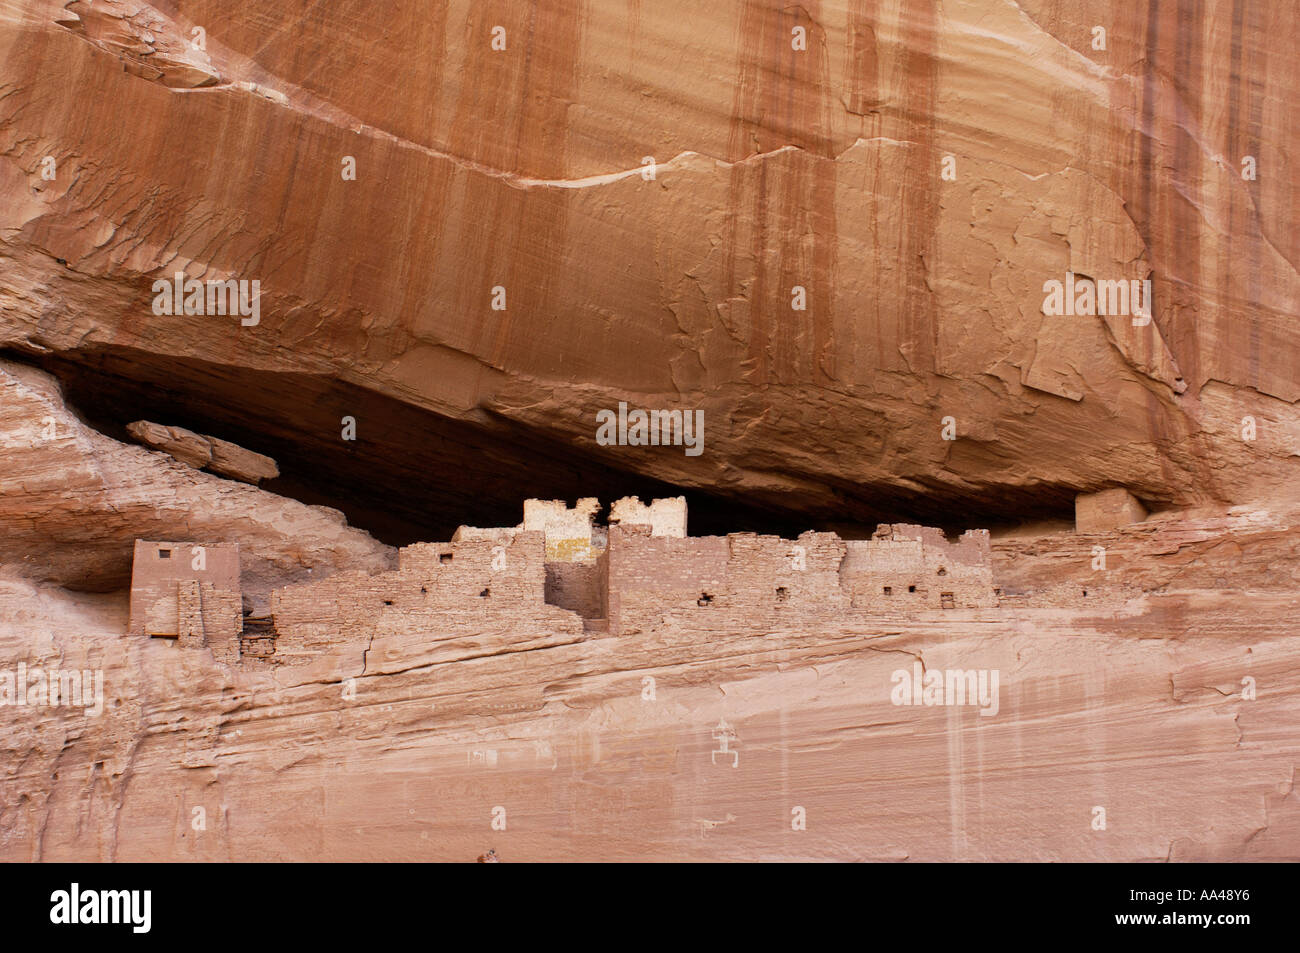 White House ruins an Anasazi or Ancestral Puebloan cliff dwelling in Canyon de Chelly Arizona. Digital photograph - Stock Image